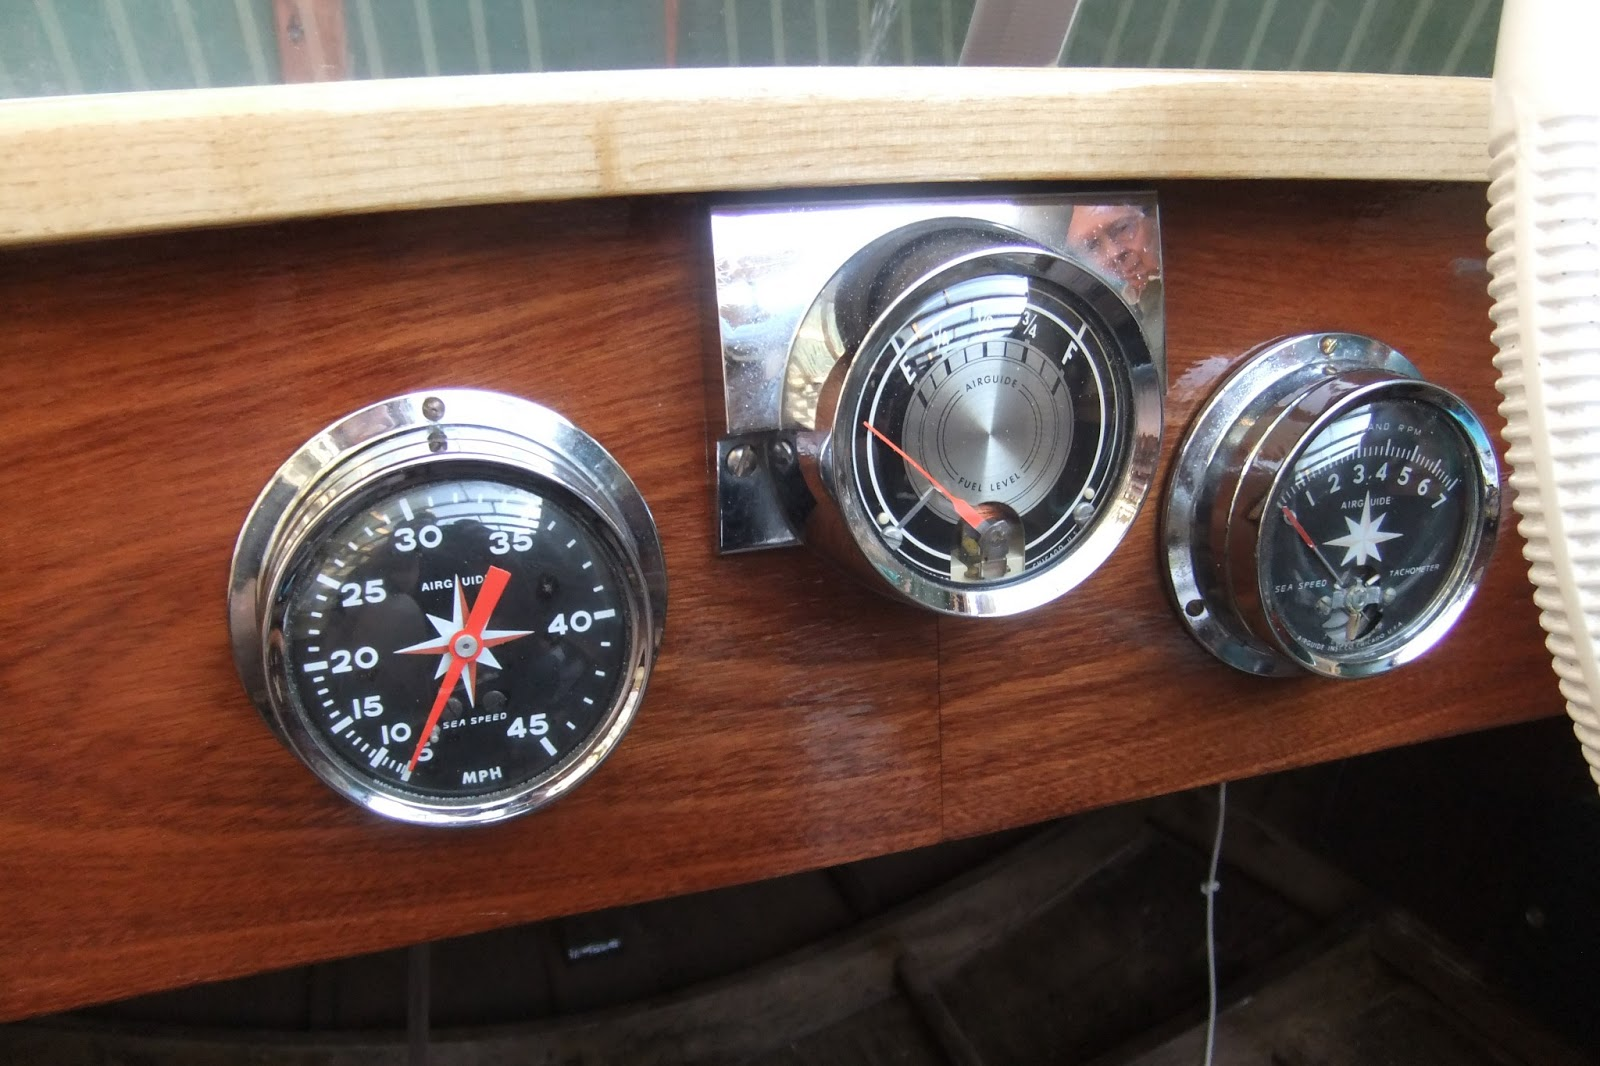 my wooden speed boat build airguide instruments rh southcoastprojects blogspot com airguide instrument company history airguide instrument company barometer